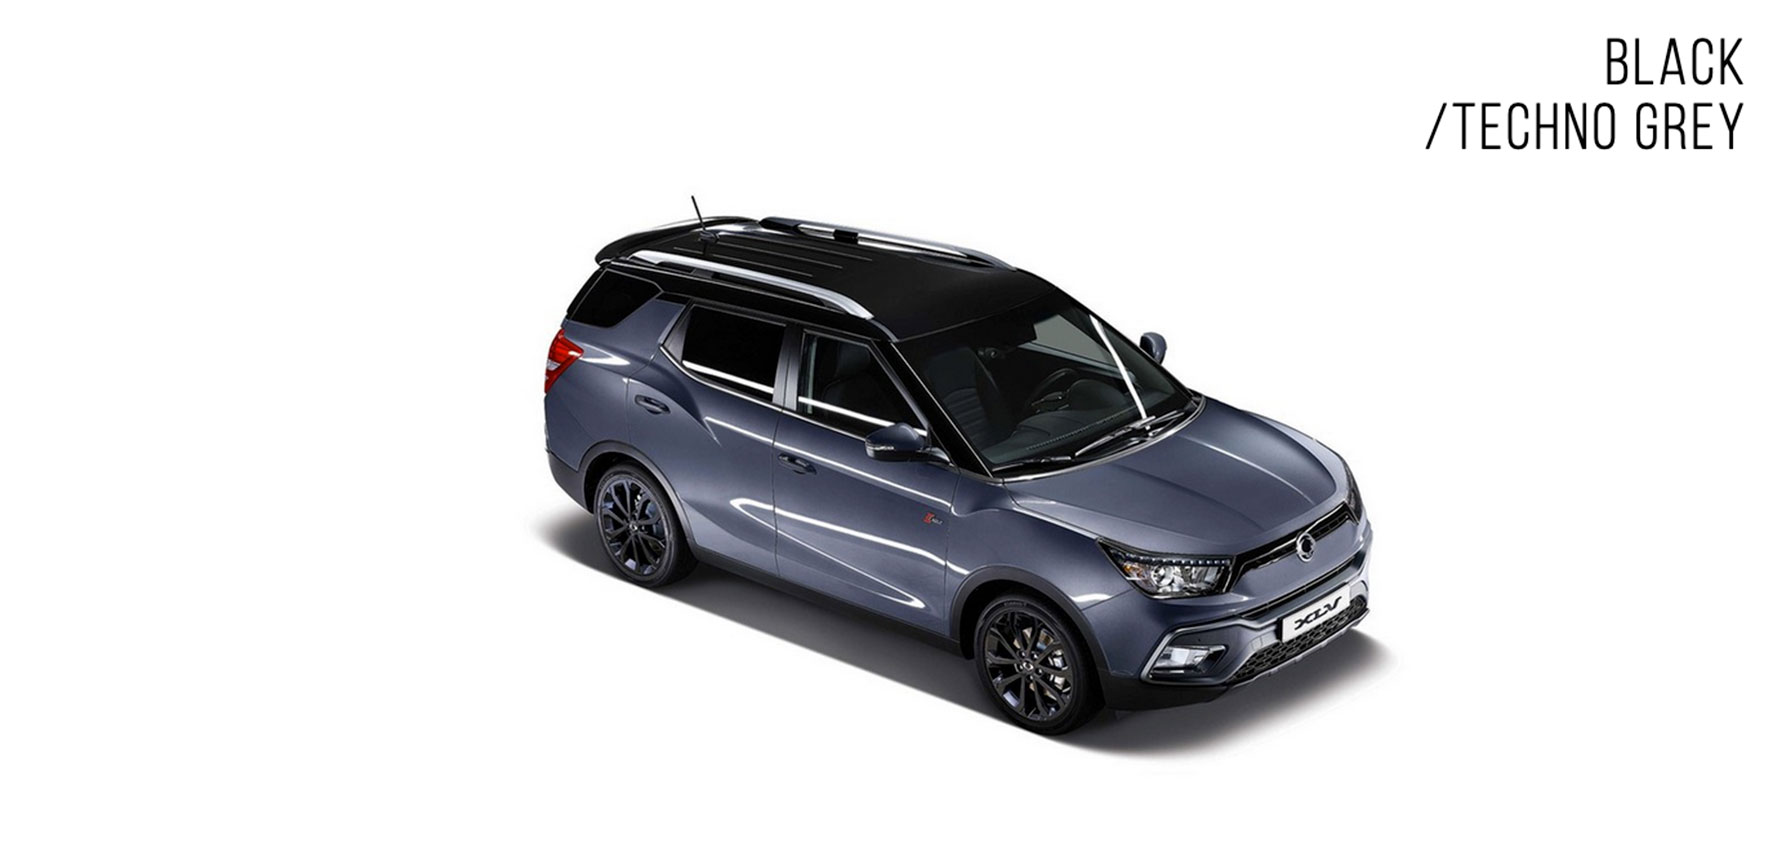 xlv-ssangyong-black-techno-gray